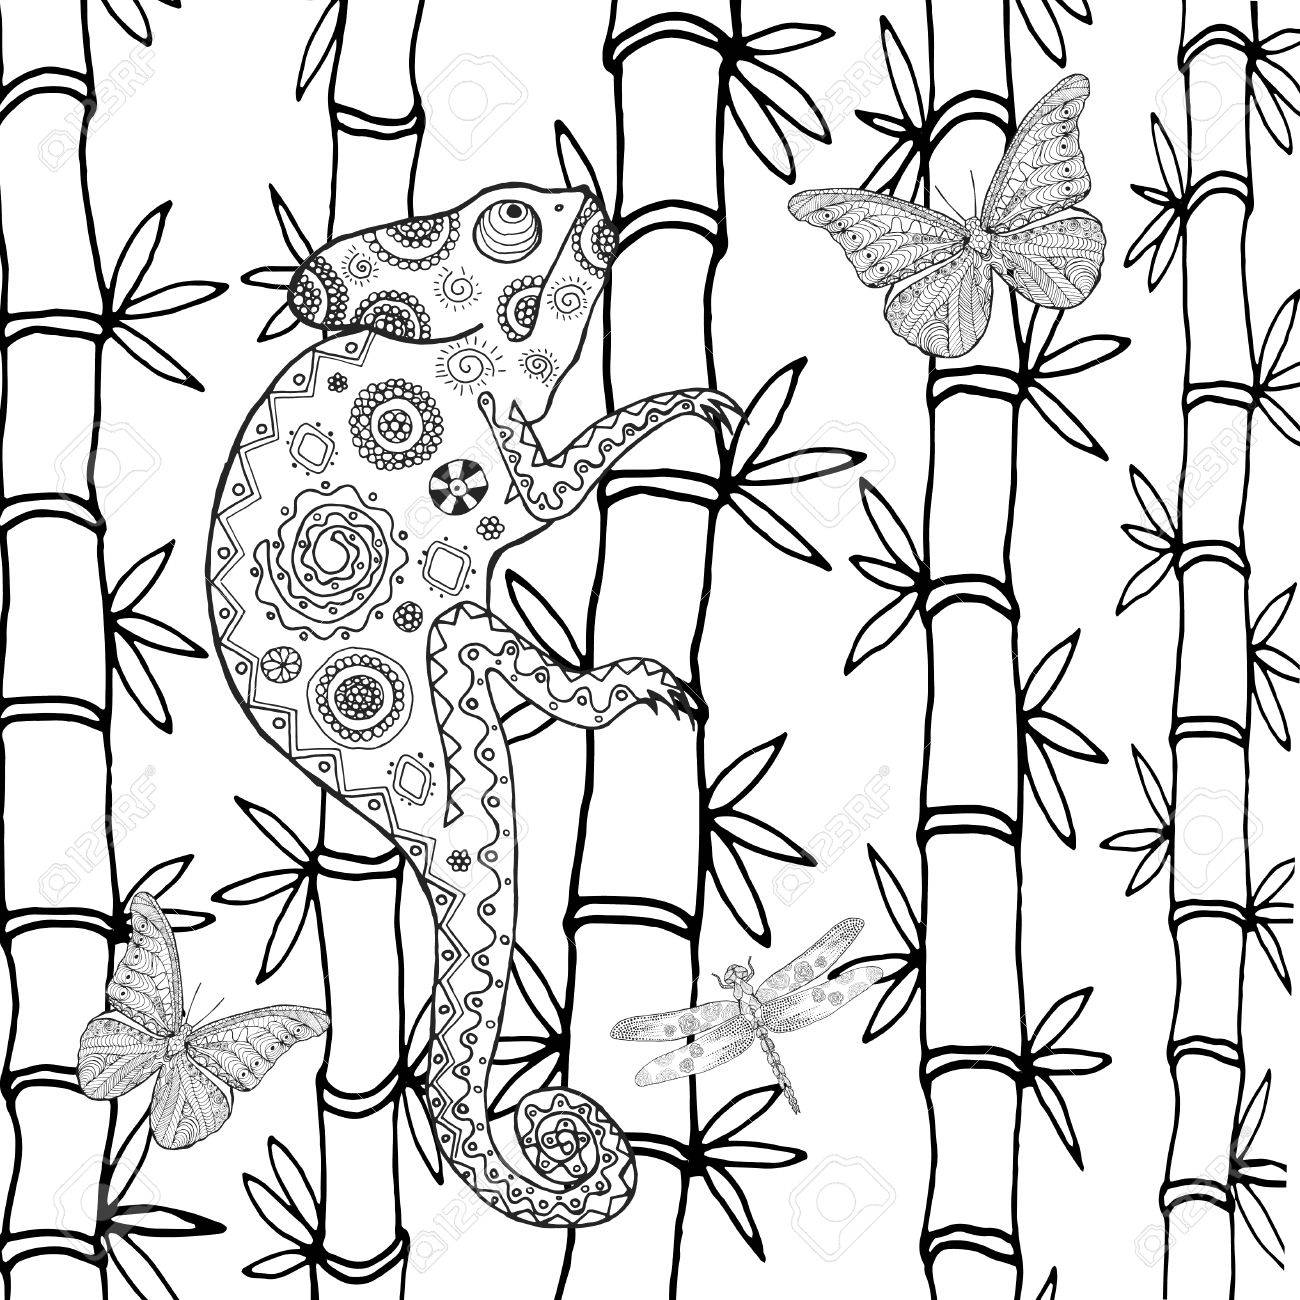 Chameleon Coloring Page Free Coloring Pages Download | Xsibe gecko ...